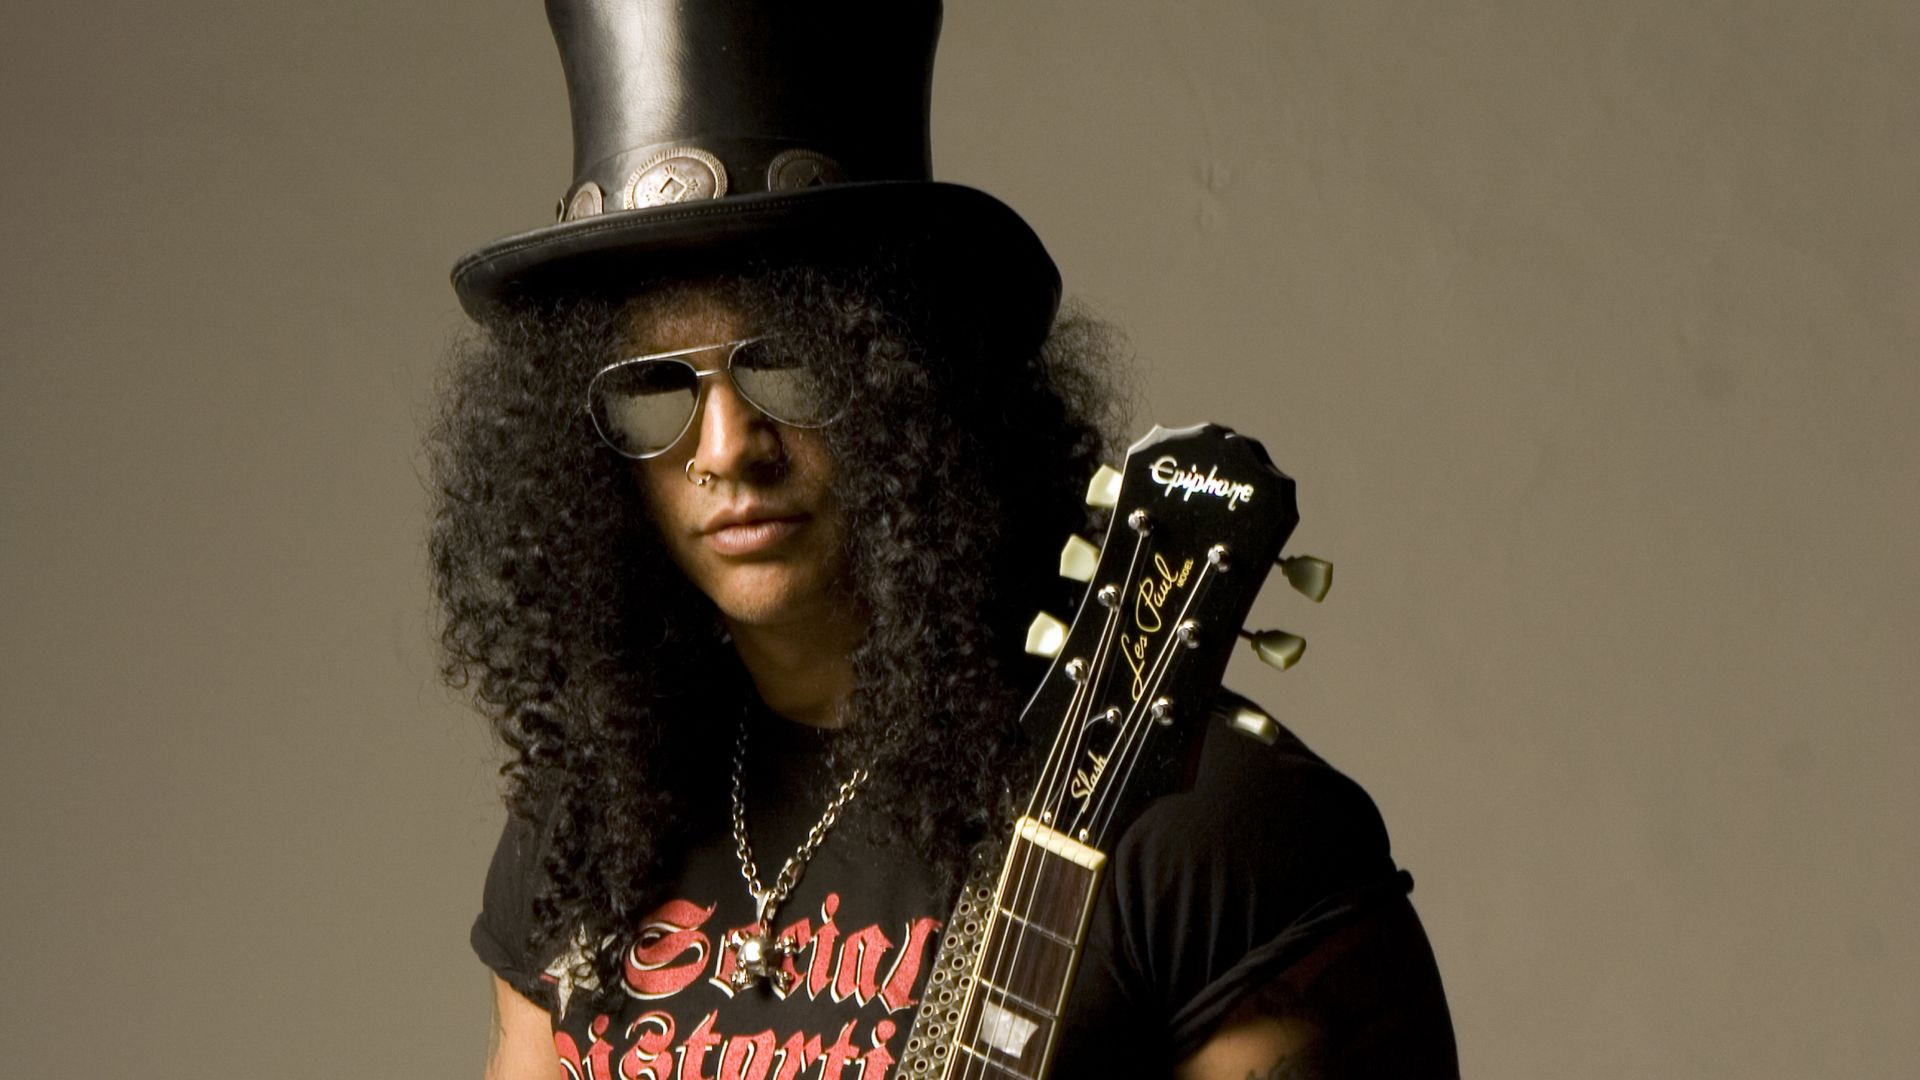 Slash De Guns And Roses Hd 1920x1080 Imagenes